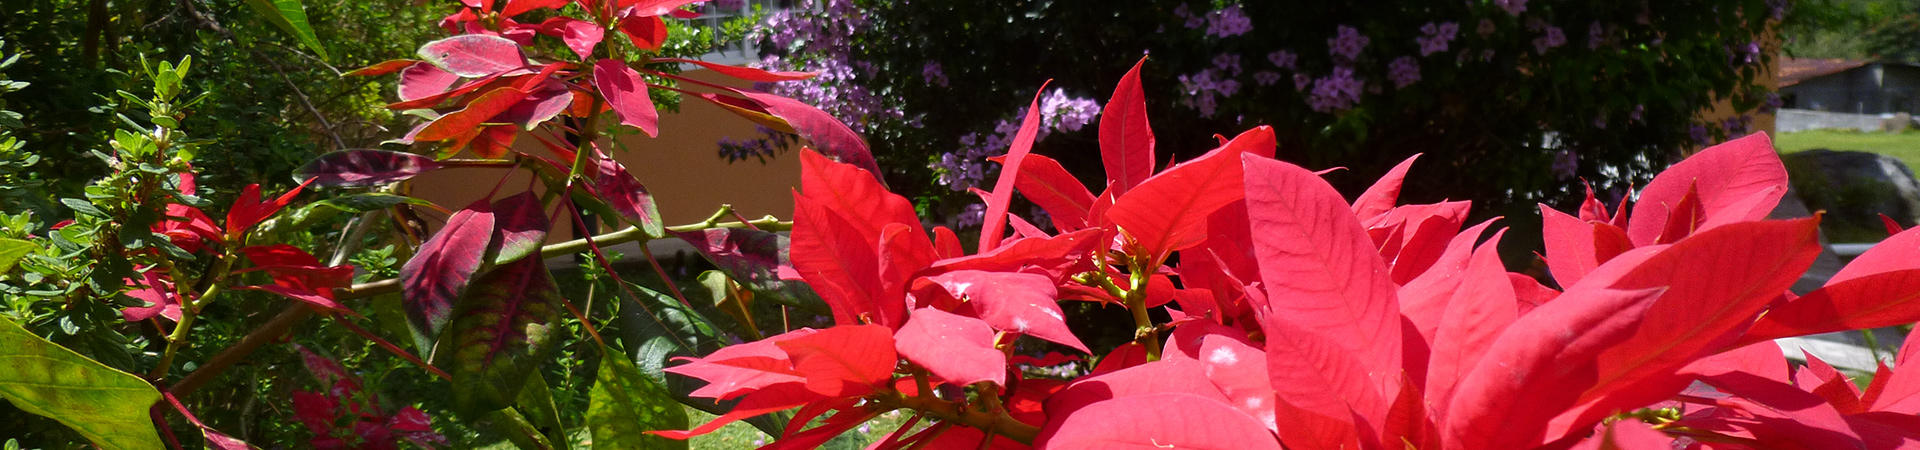 Beautiful-Pointsettias-at-Casa_panama.jpg.1920x450_default